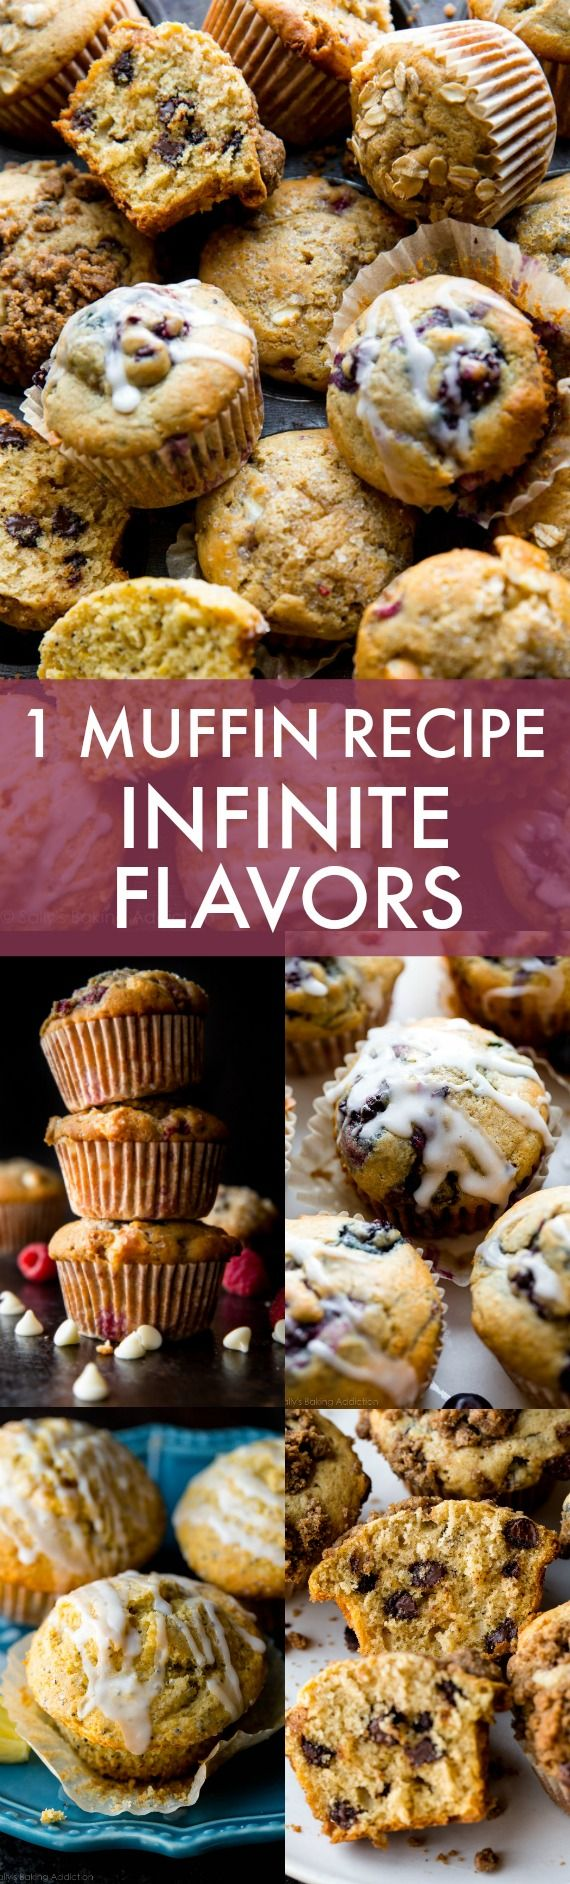 Create hundreds of muffin flavors from this 1 master muffin recipe!! Easy, straightforward, and freezer friendly! Lemon poppy seed, blueberry muffins, chocolate chip muffins, and coffee cake muffins on sallysbakingaddiction.com